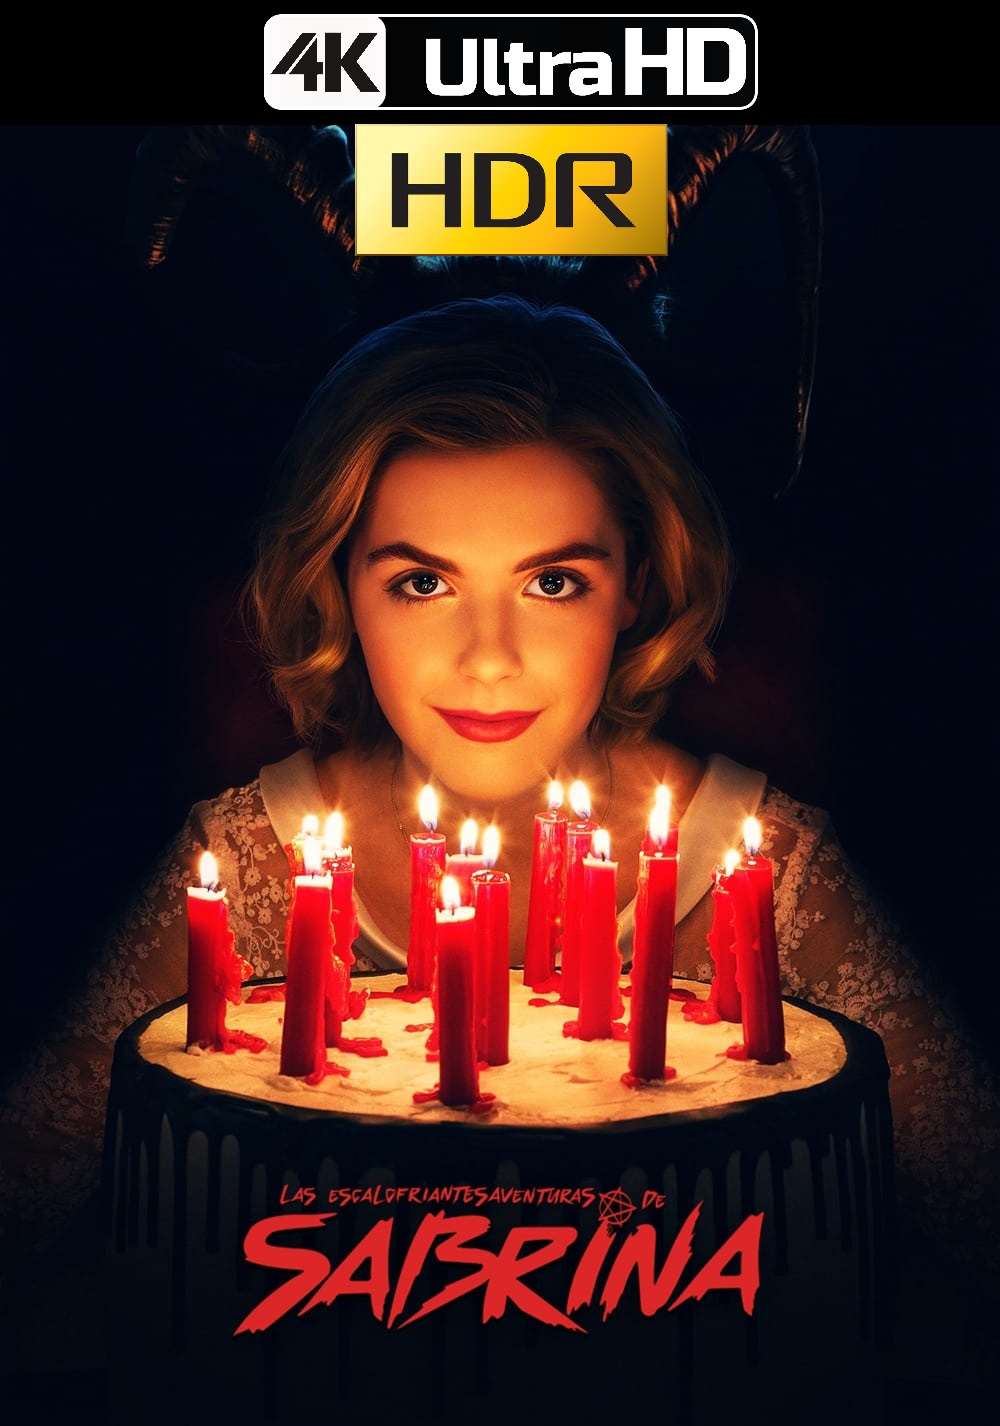 Chilling Adventures of Sabrina (2018) Temporada 01/Parte 01 NF WEBRip 4K UHD HDR Latino